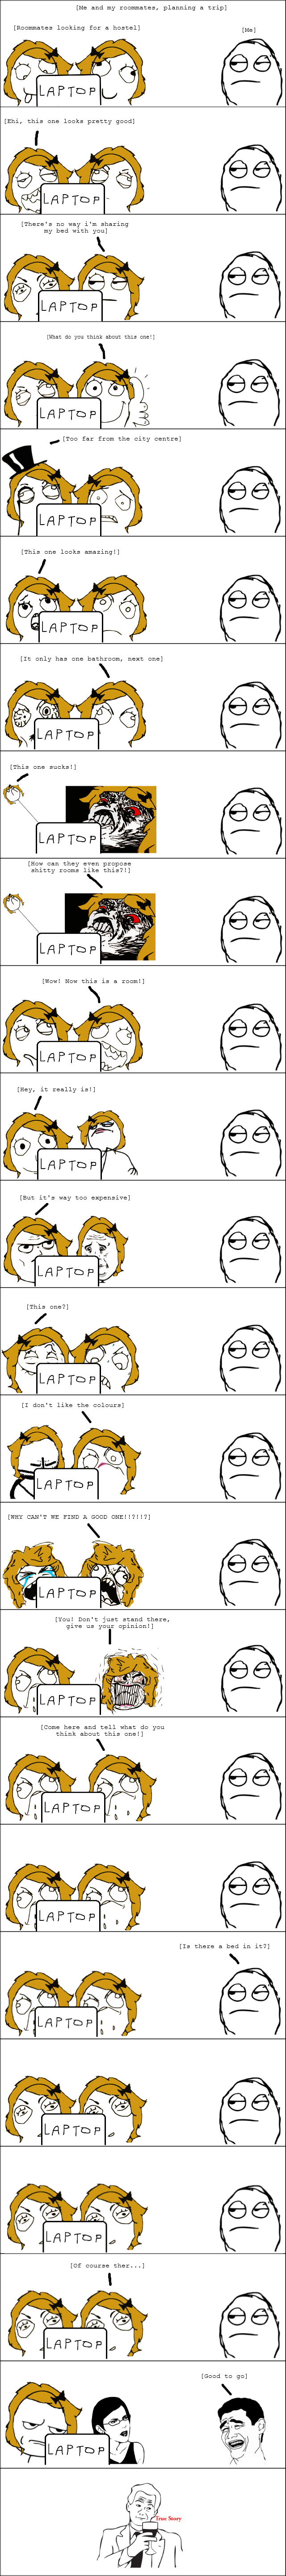 Title. My first rage comic, be gentle.